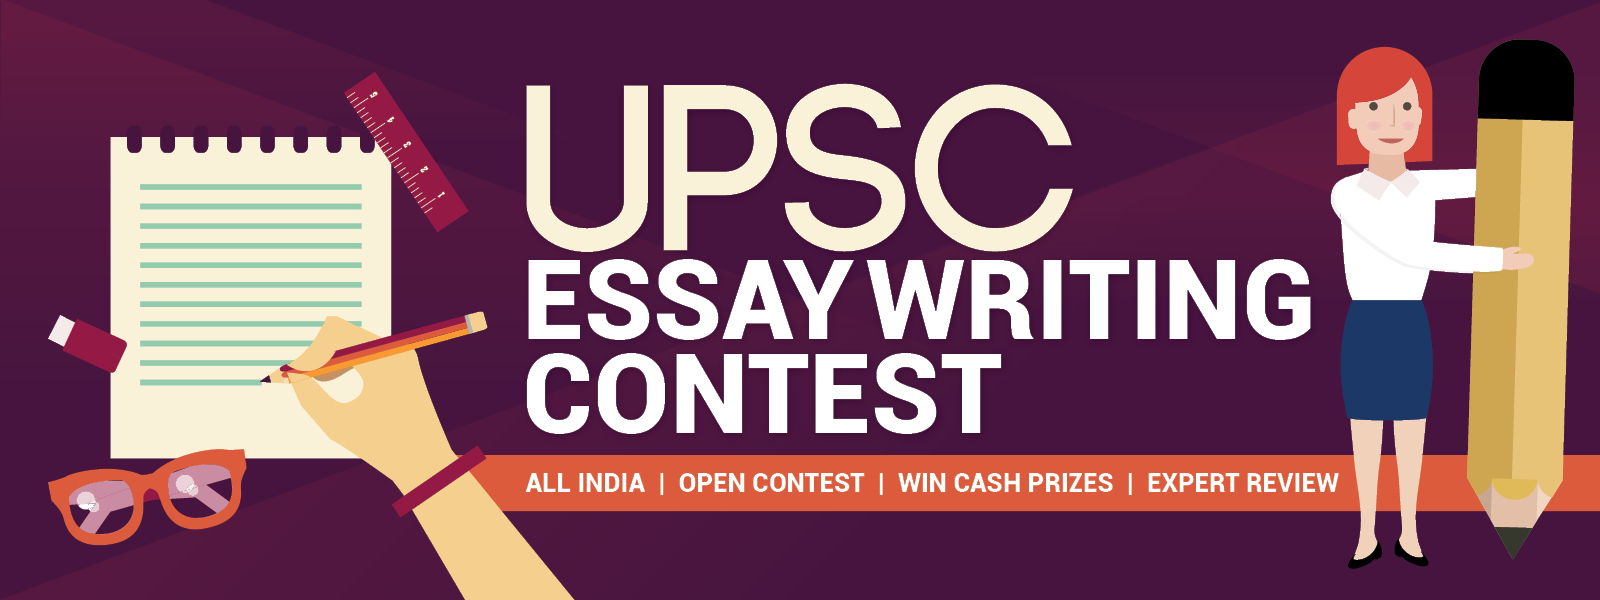 Essay help writing competition 2017 india